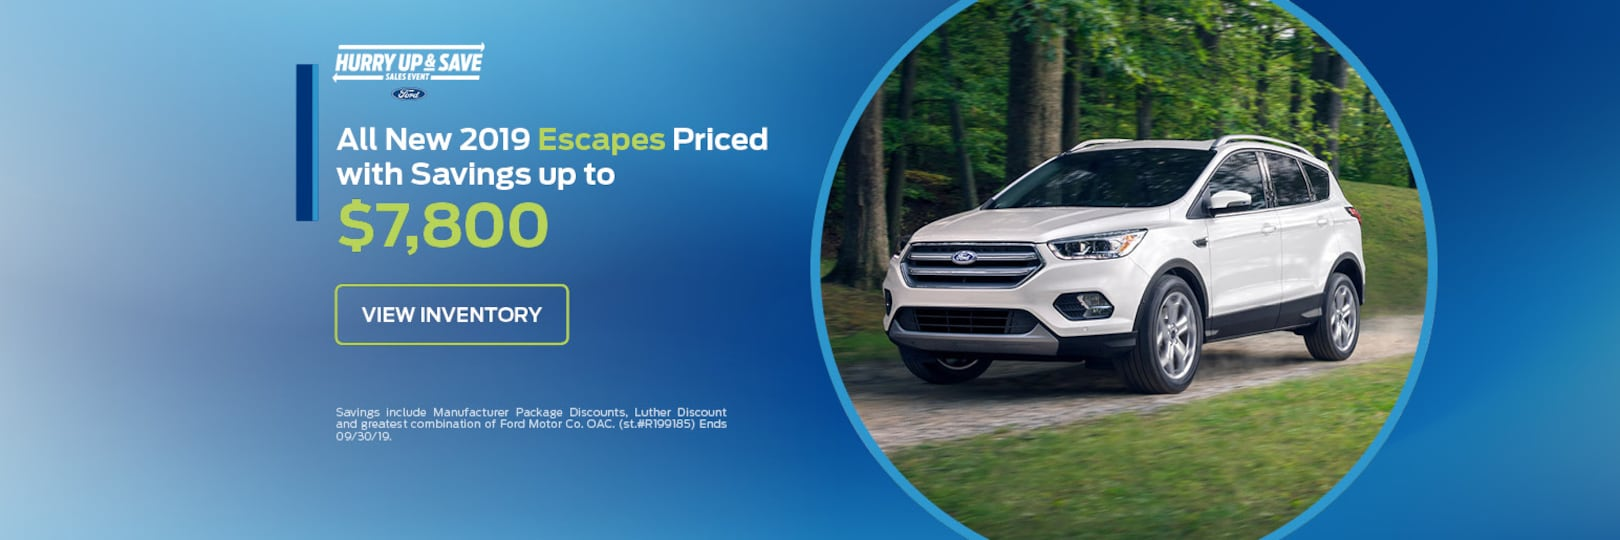 Ford Dealers Mn >> North Country Ford Lincoln Ford Dealership In Coon Rapids Mn